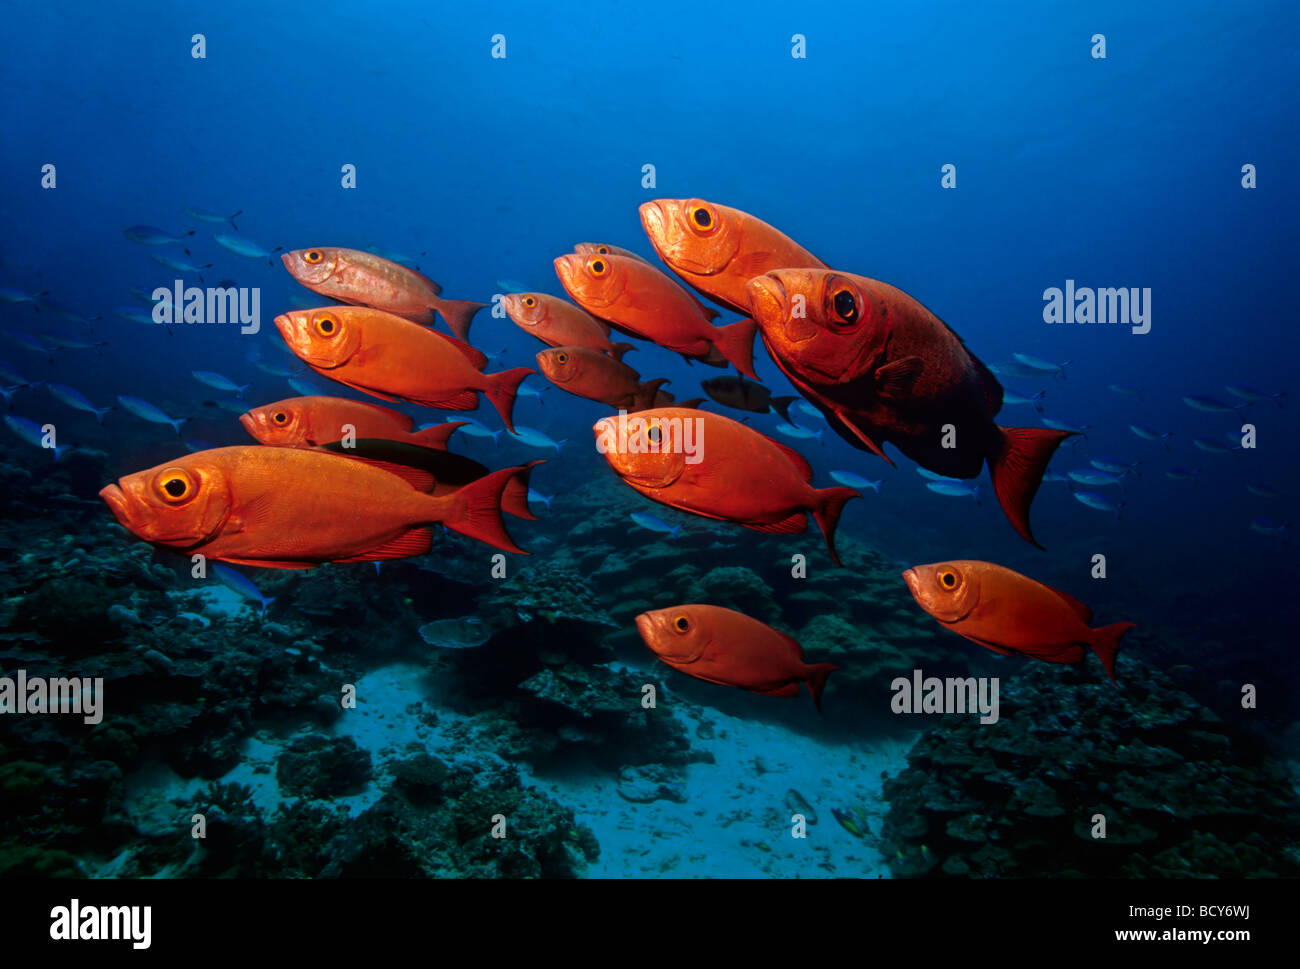 School of big-eye perches (Priacanthus hamrur) in a coral reef, Similan Islands, Andaman Sea, Thailand, Asia, Indian - Stock Image